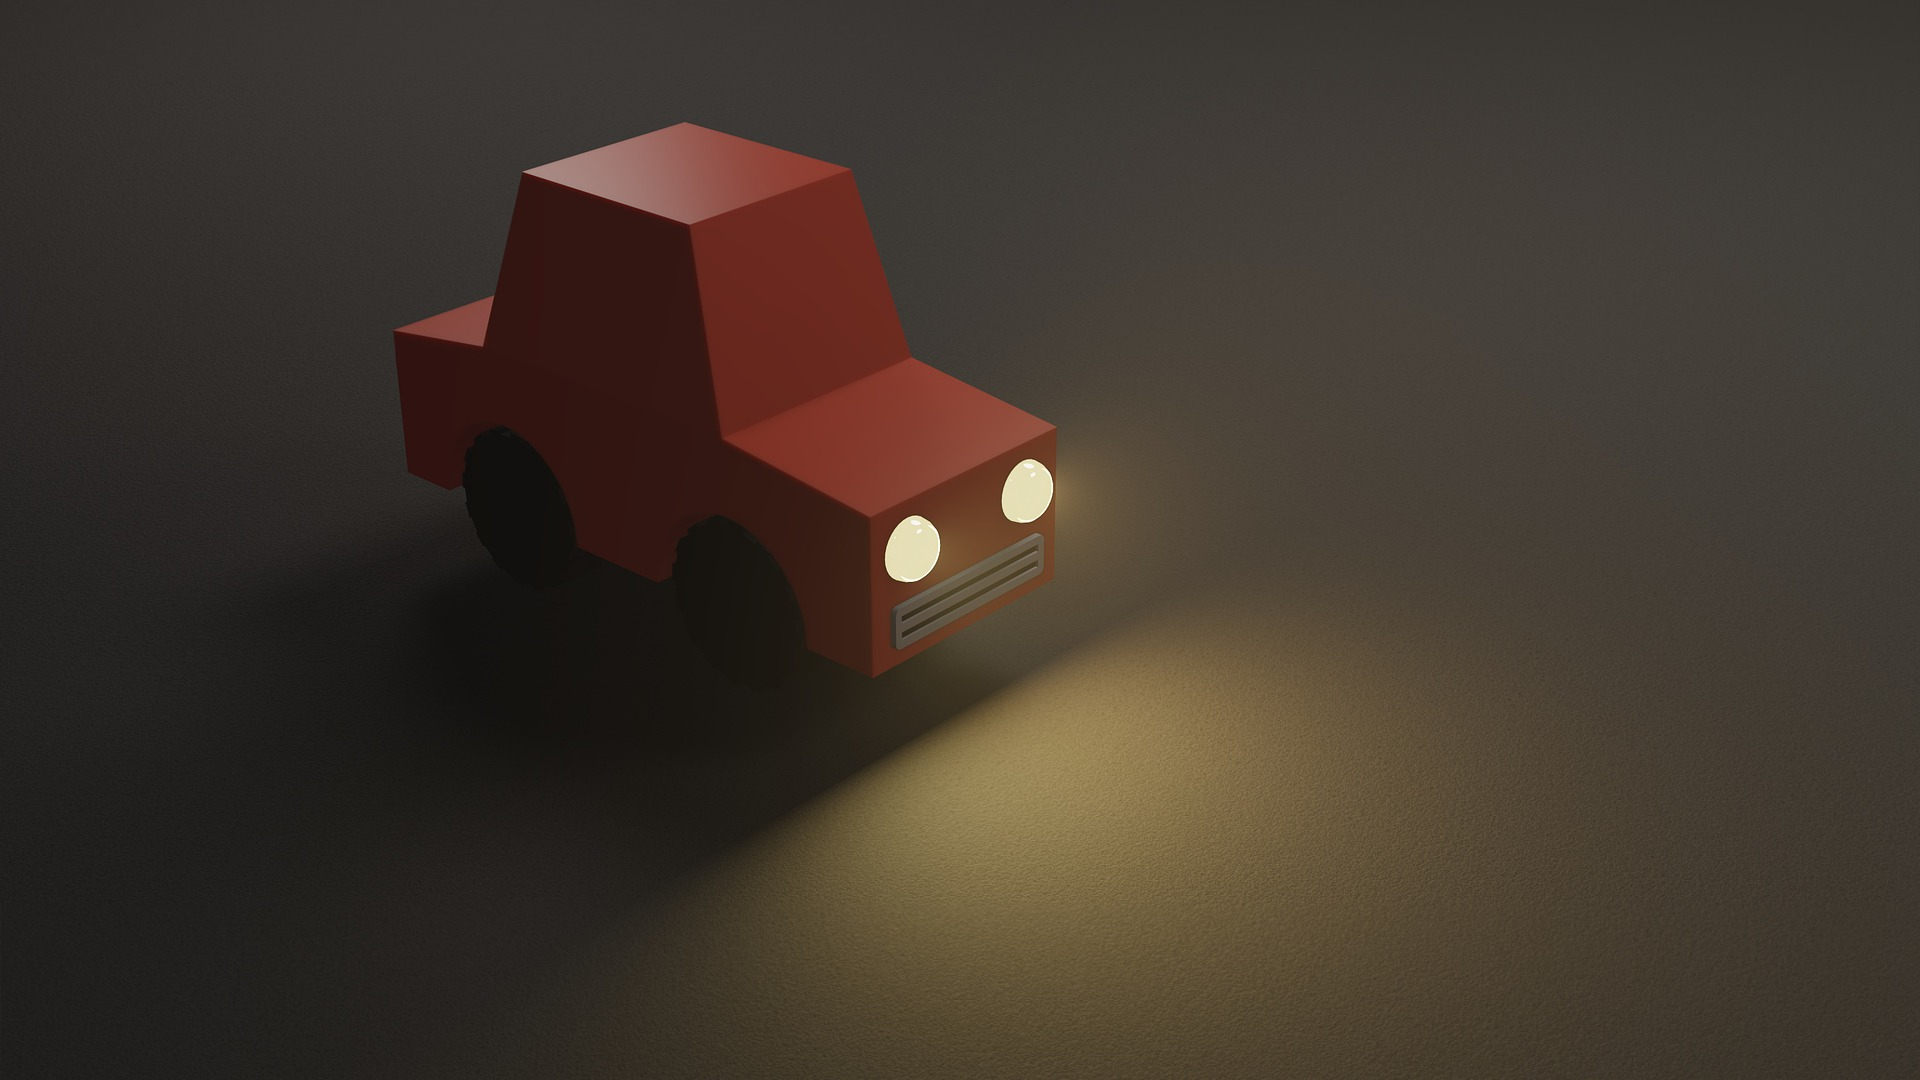 a 3d low poly car with headlights on in the night